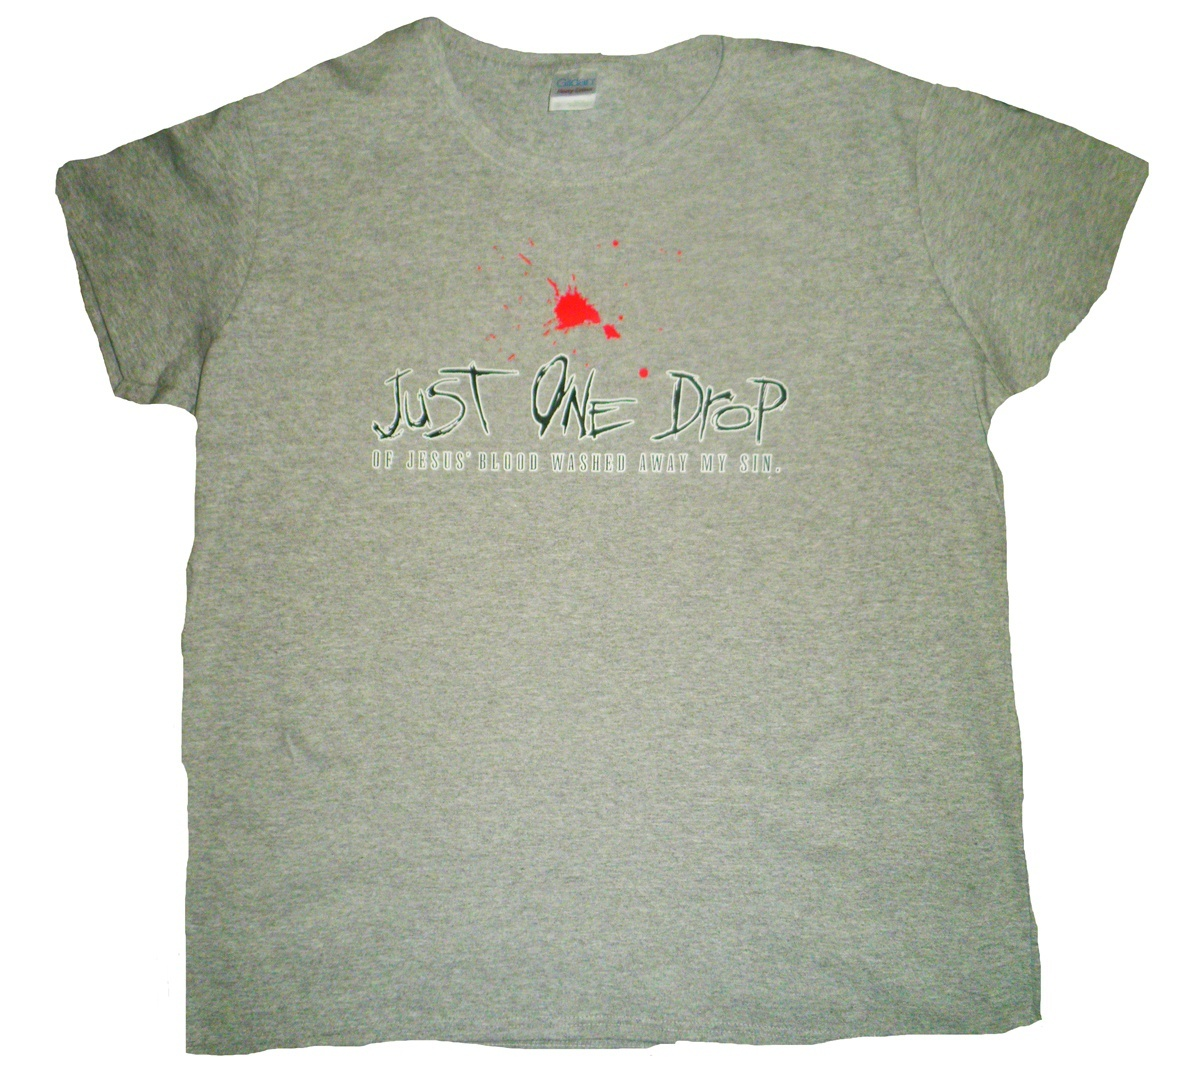 Just One Drop T-Shirt